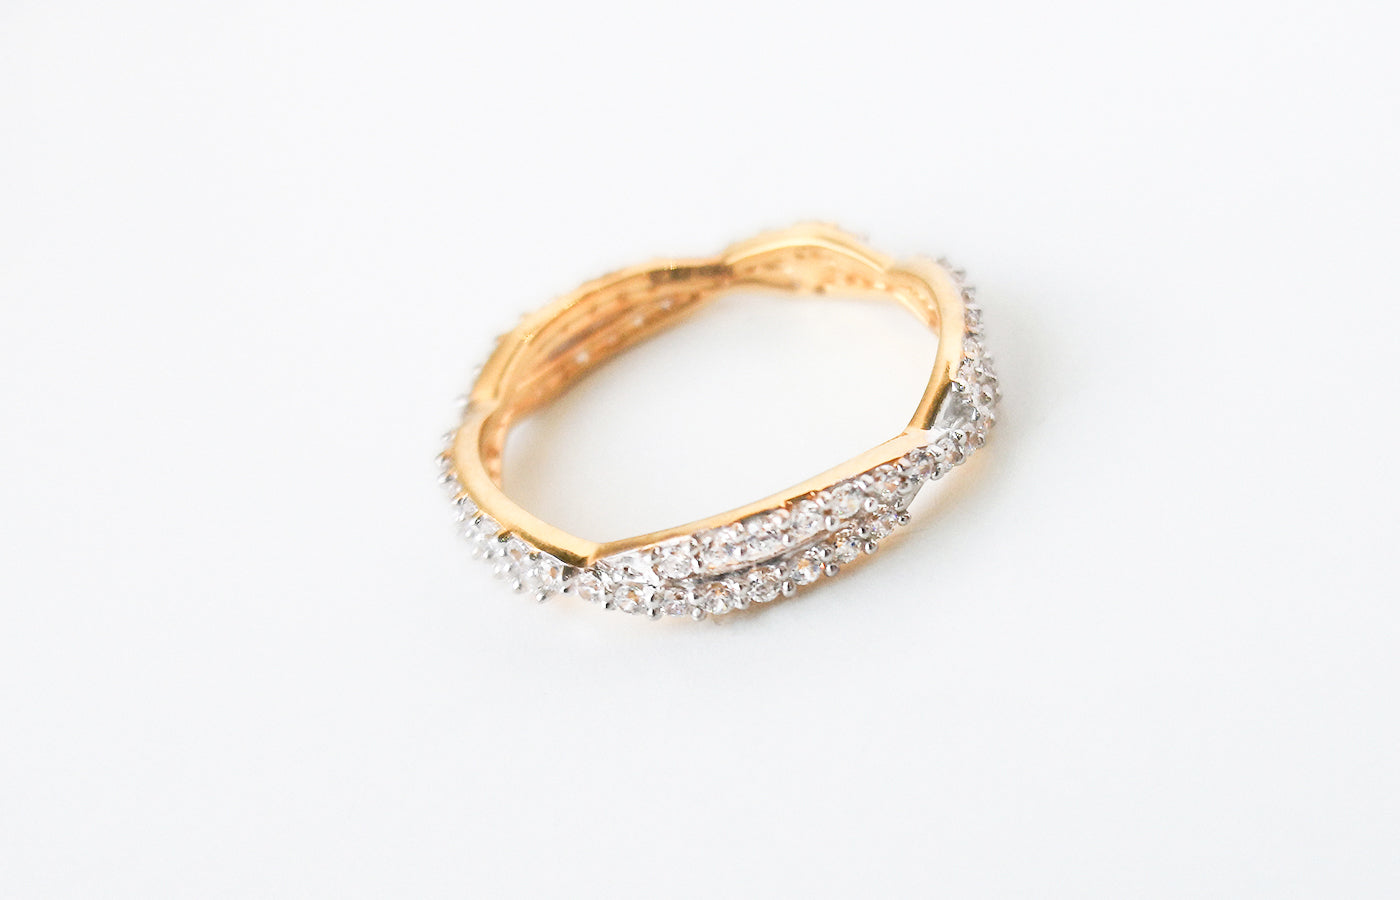 22ct Gold Eternity Ring set with Swarovski Zirconias LR15091